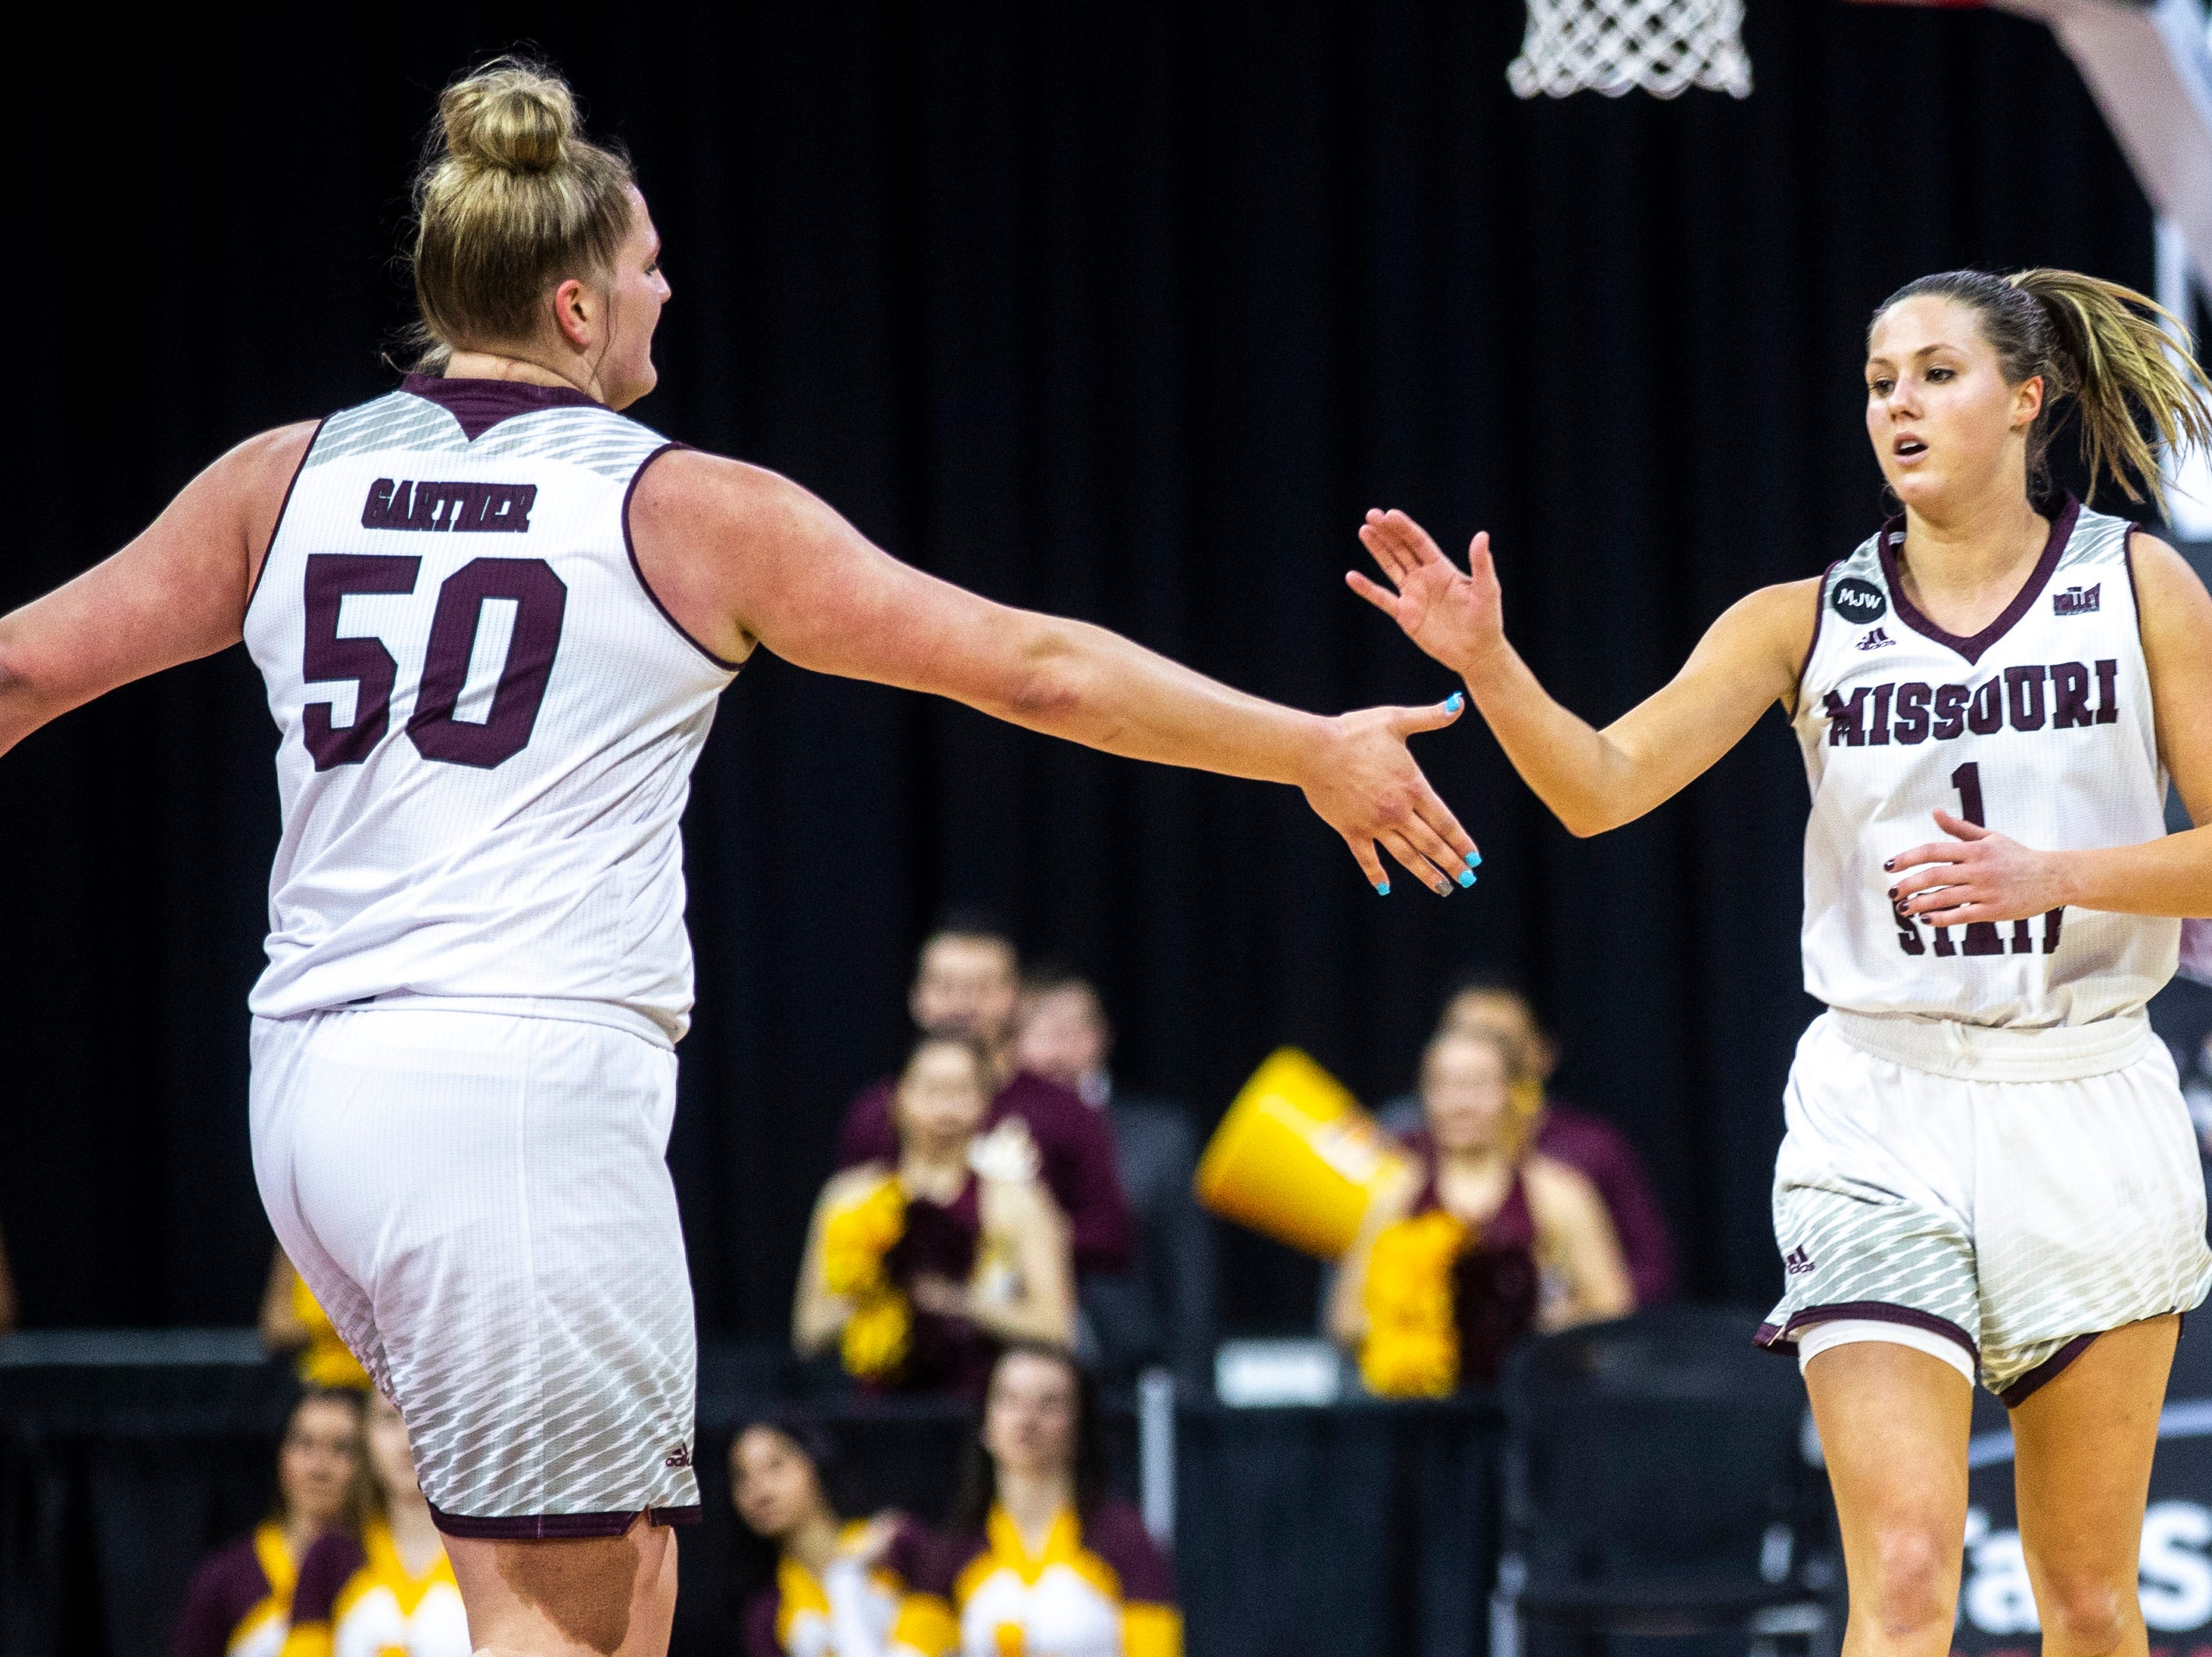 Missouri State guard Danielle Gitzen (1) gets a high-five from Missouri State center Emily Gartner (50) after making a 3-point basket during a NCAA Missouri Valley Conference women's basketball quarterfinal tournament game, Friday, March 15, 2019, at the TaxSlayer Center in Moline, Illinois.